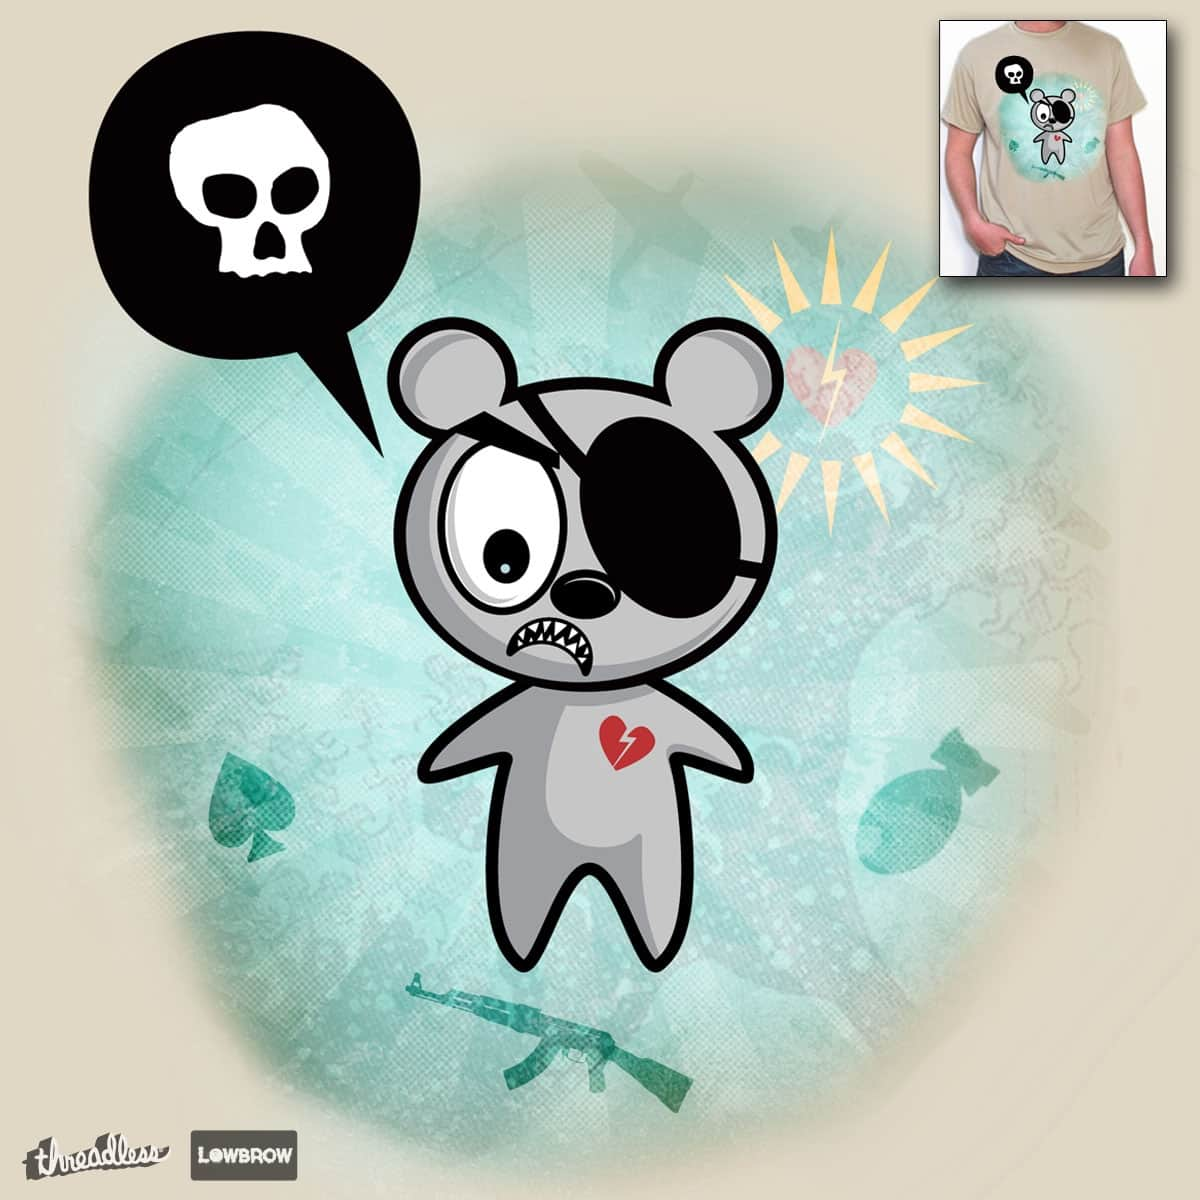 angry bear II by ozf5 on Threadless